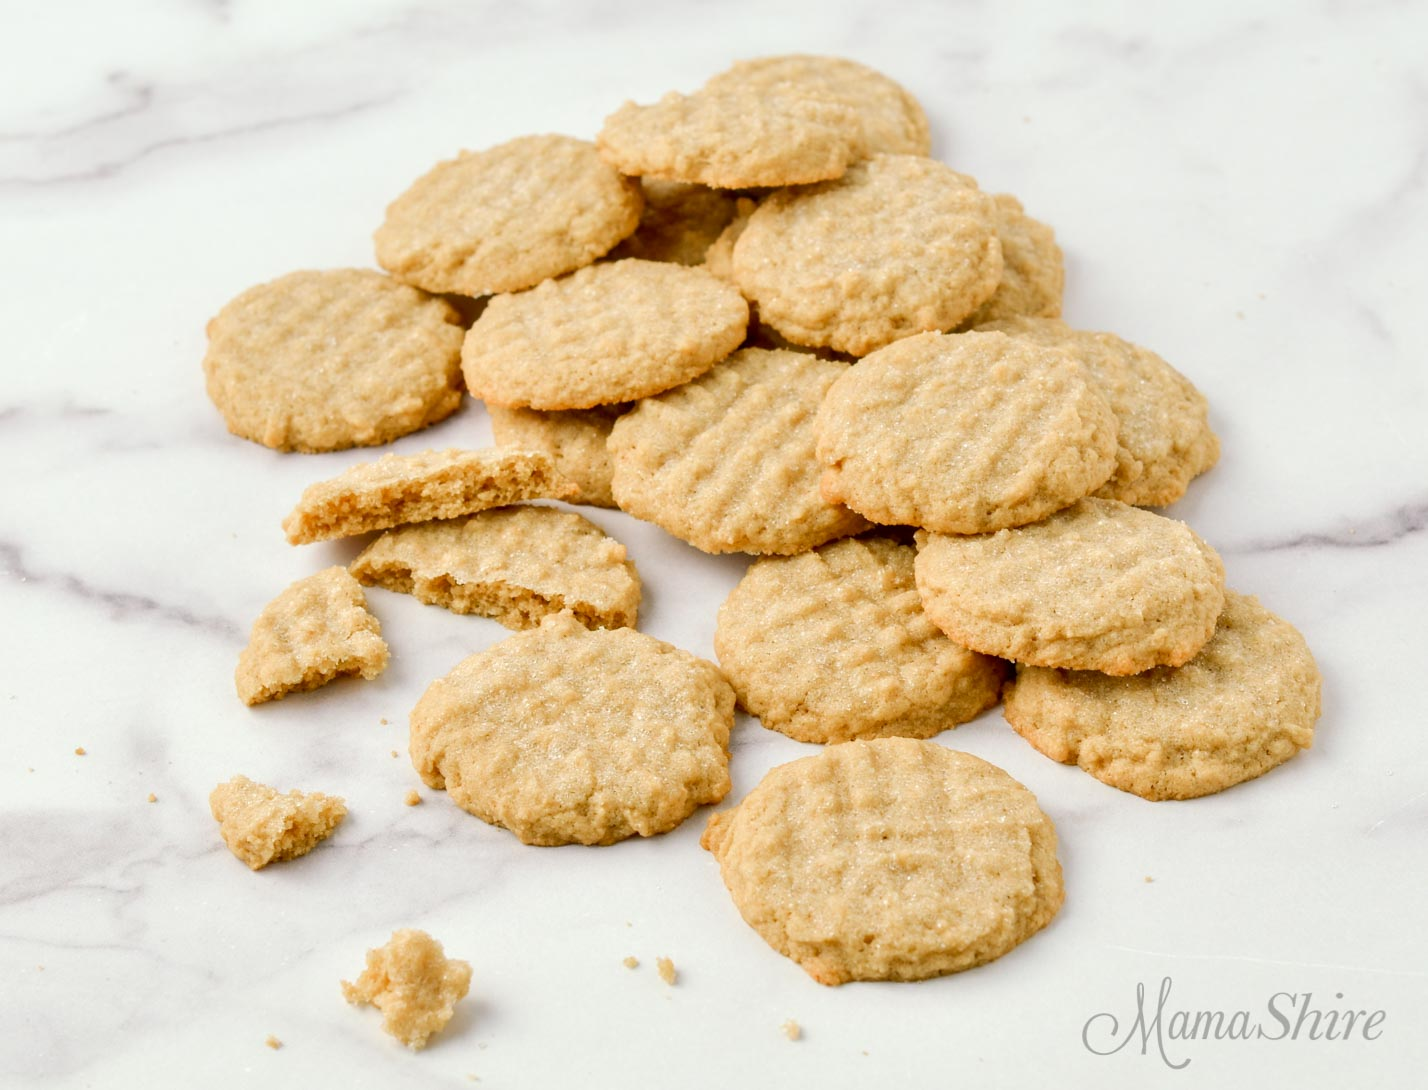 A pile of gluten-free and dairy-free peanut butter cookies.